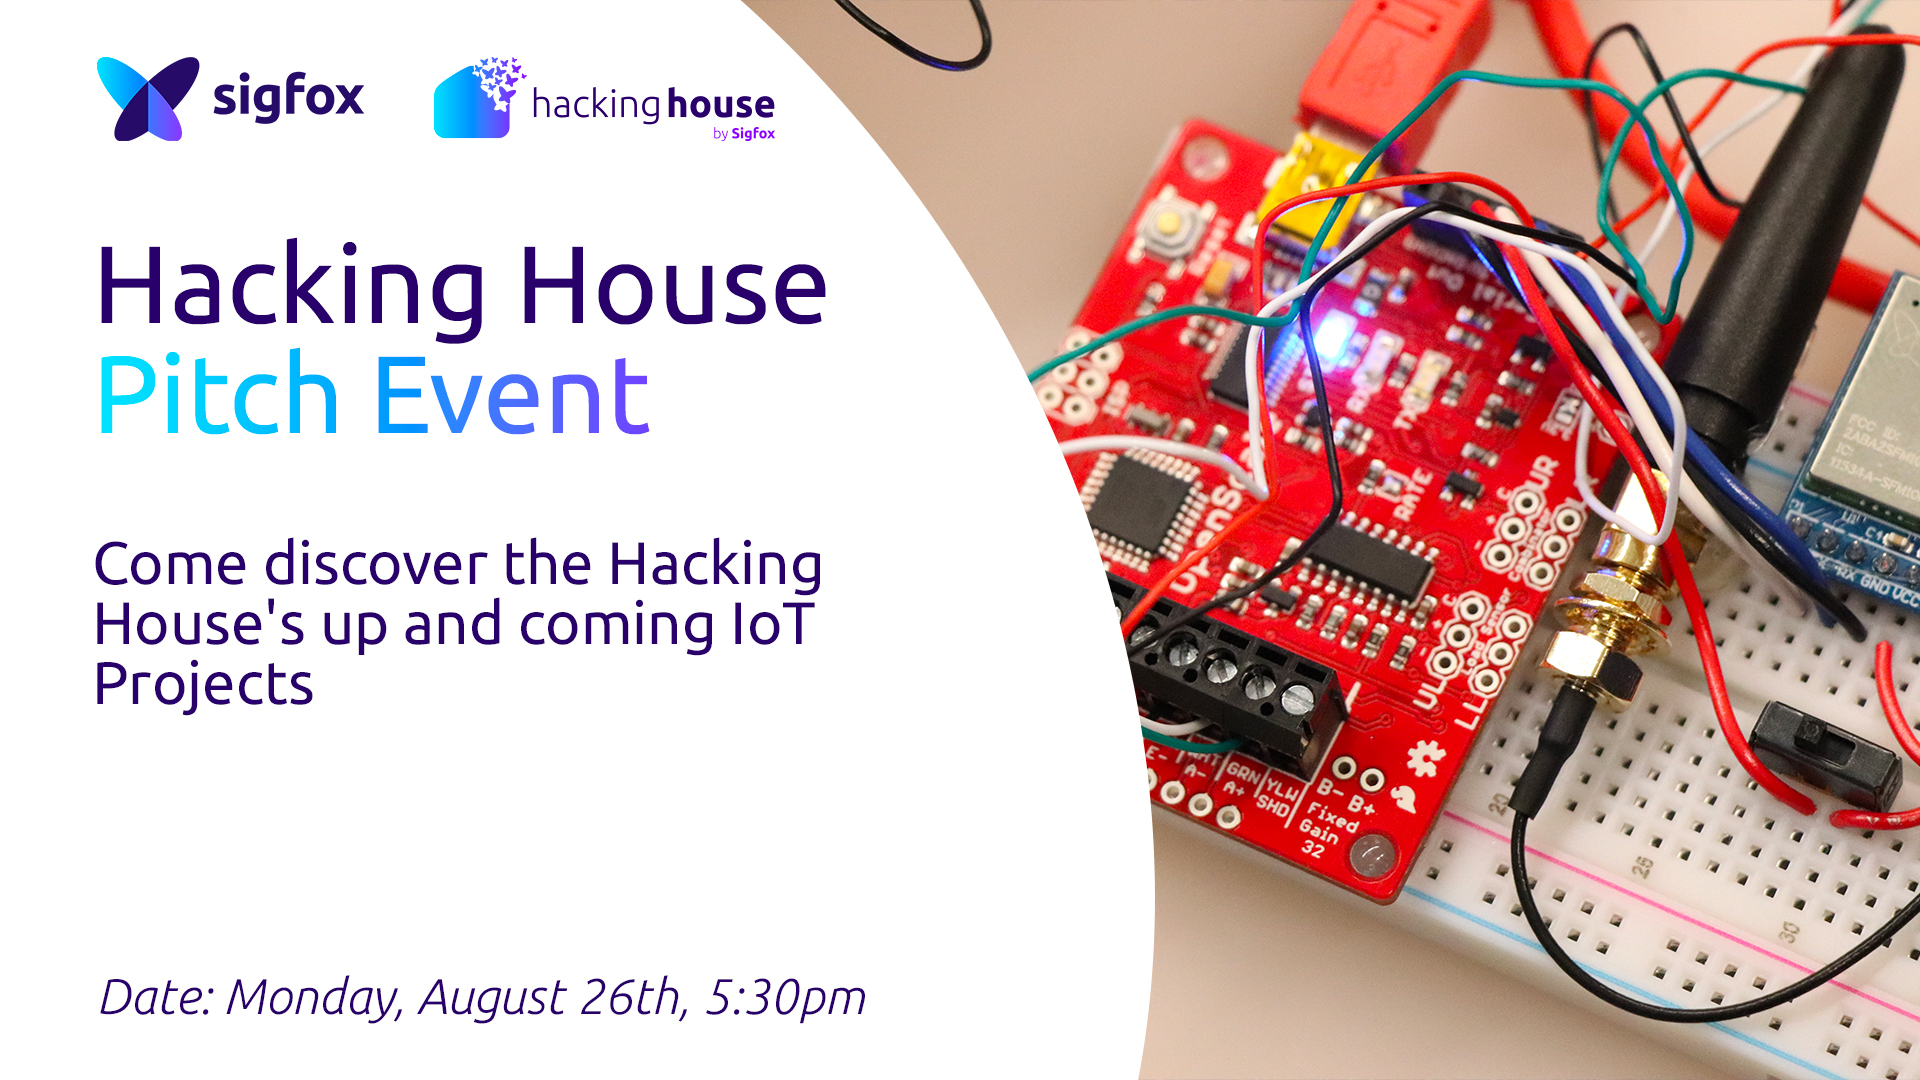 Sigfox Hacking House Pitch Event